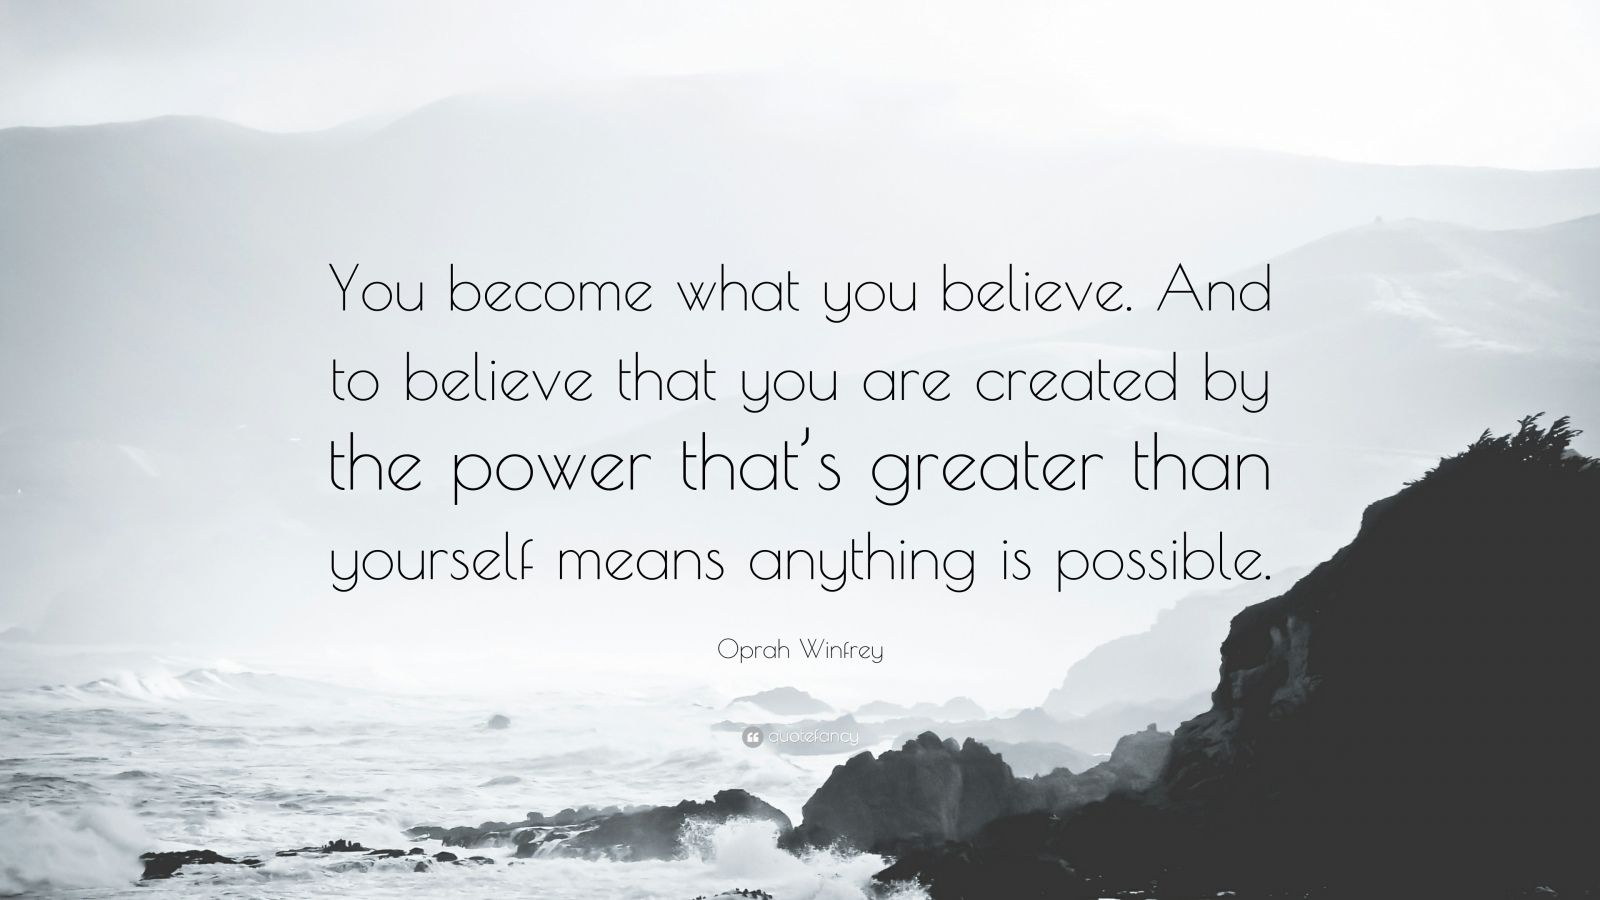 """Oprah Winfrey Quote: """"You become what you believe. And to believe that you are created by the power that's greater than yourself means anything is possible."""""""